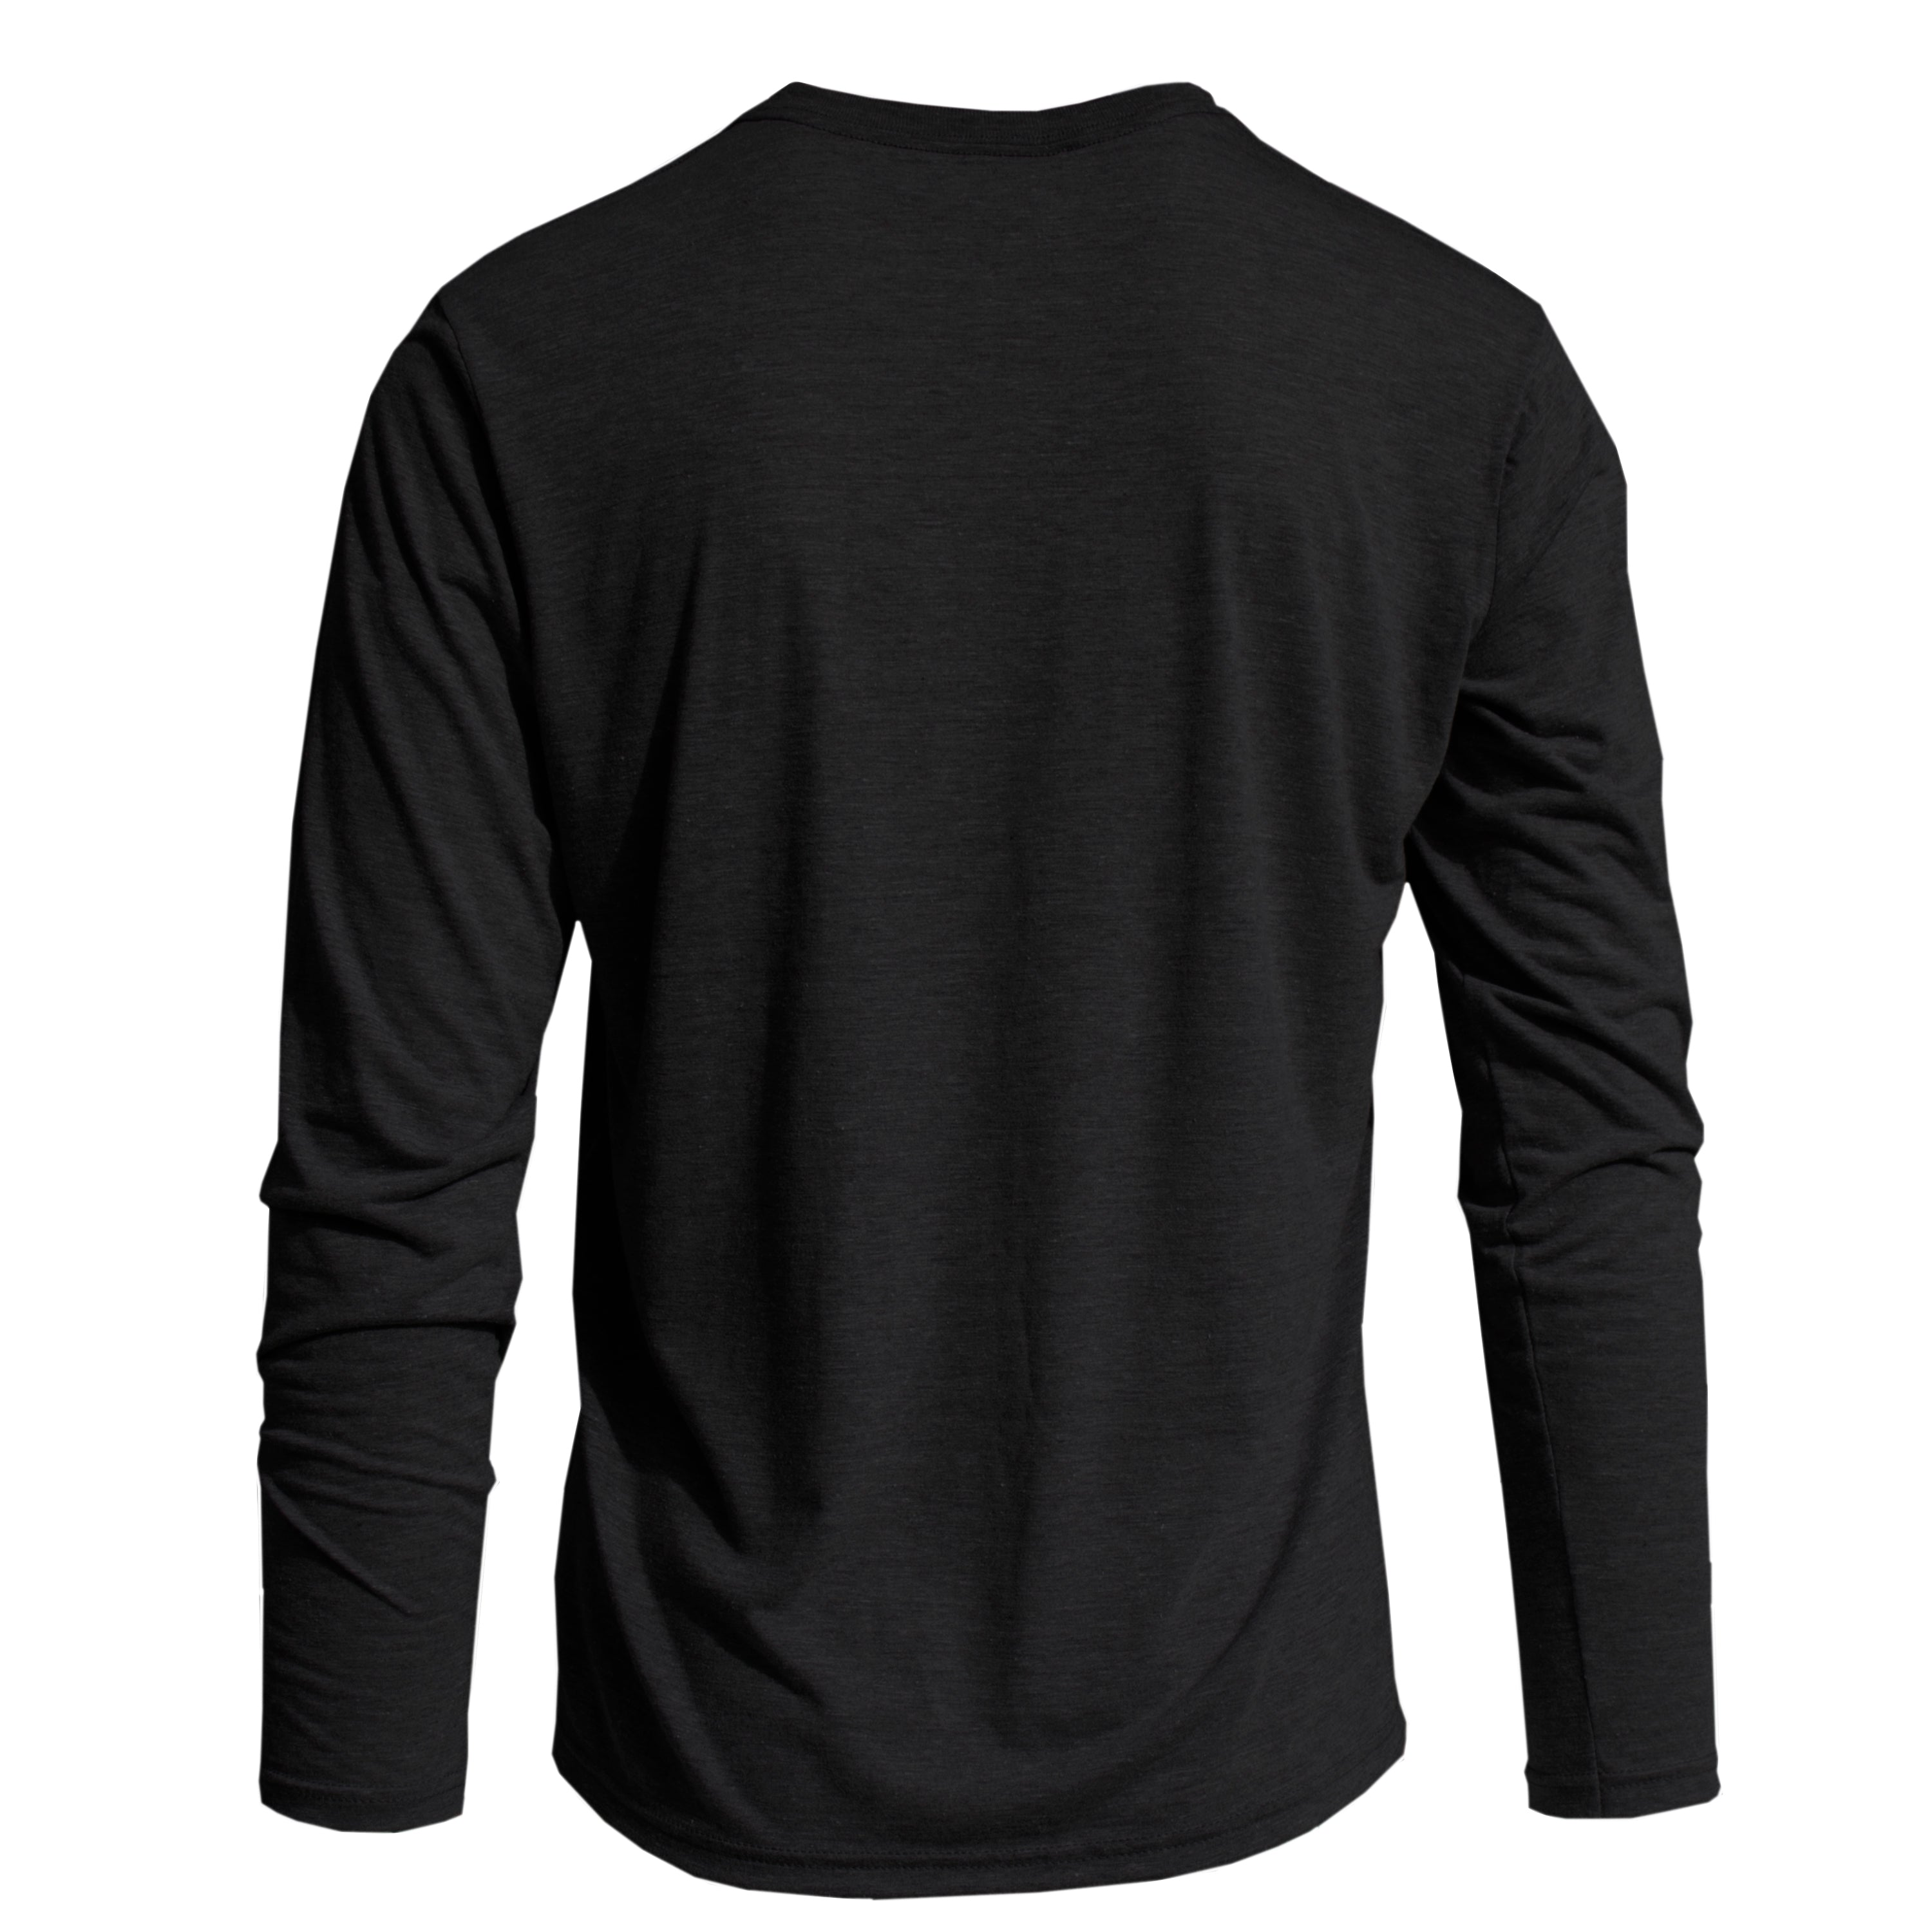 RM701CK REPREVE® Recycled Triblend Long Sleeve - Charblack